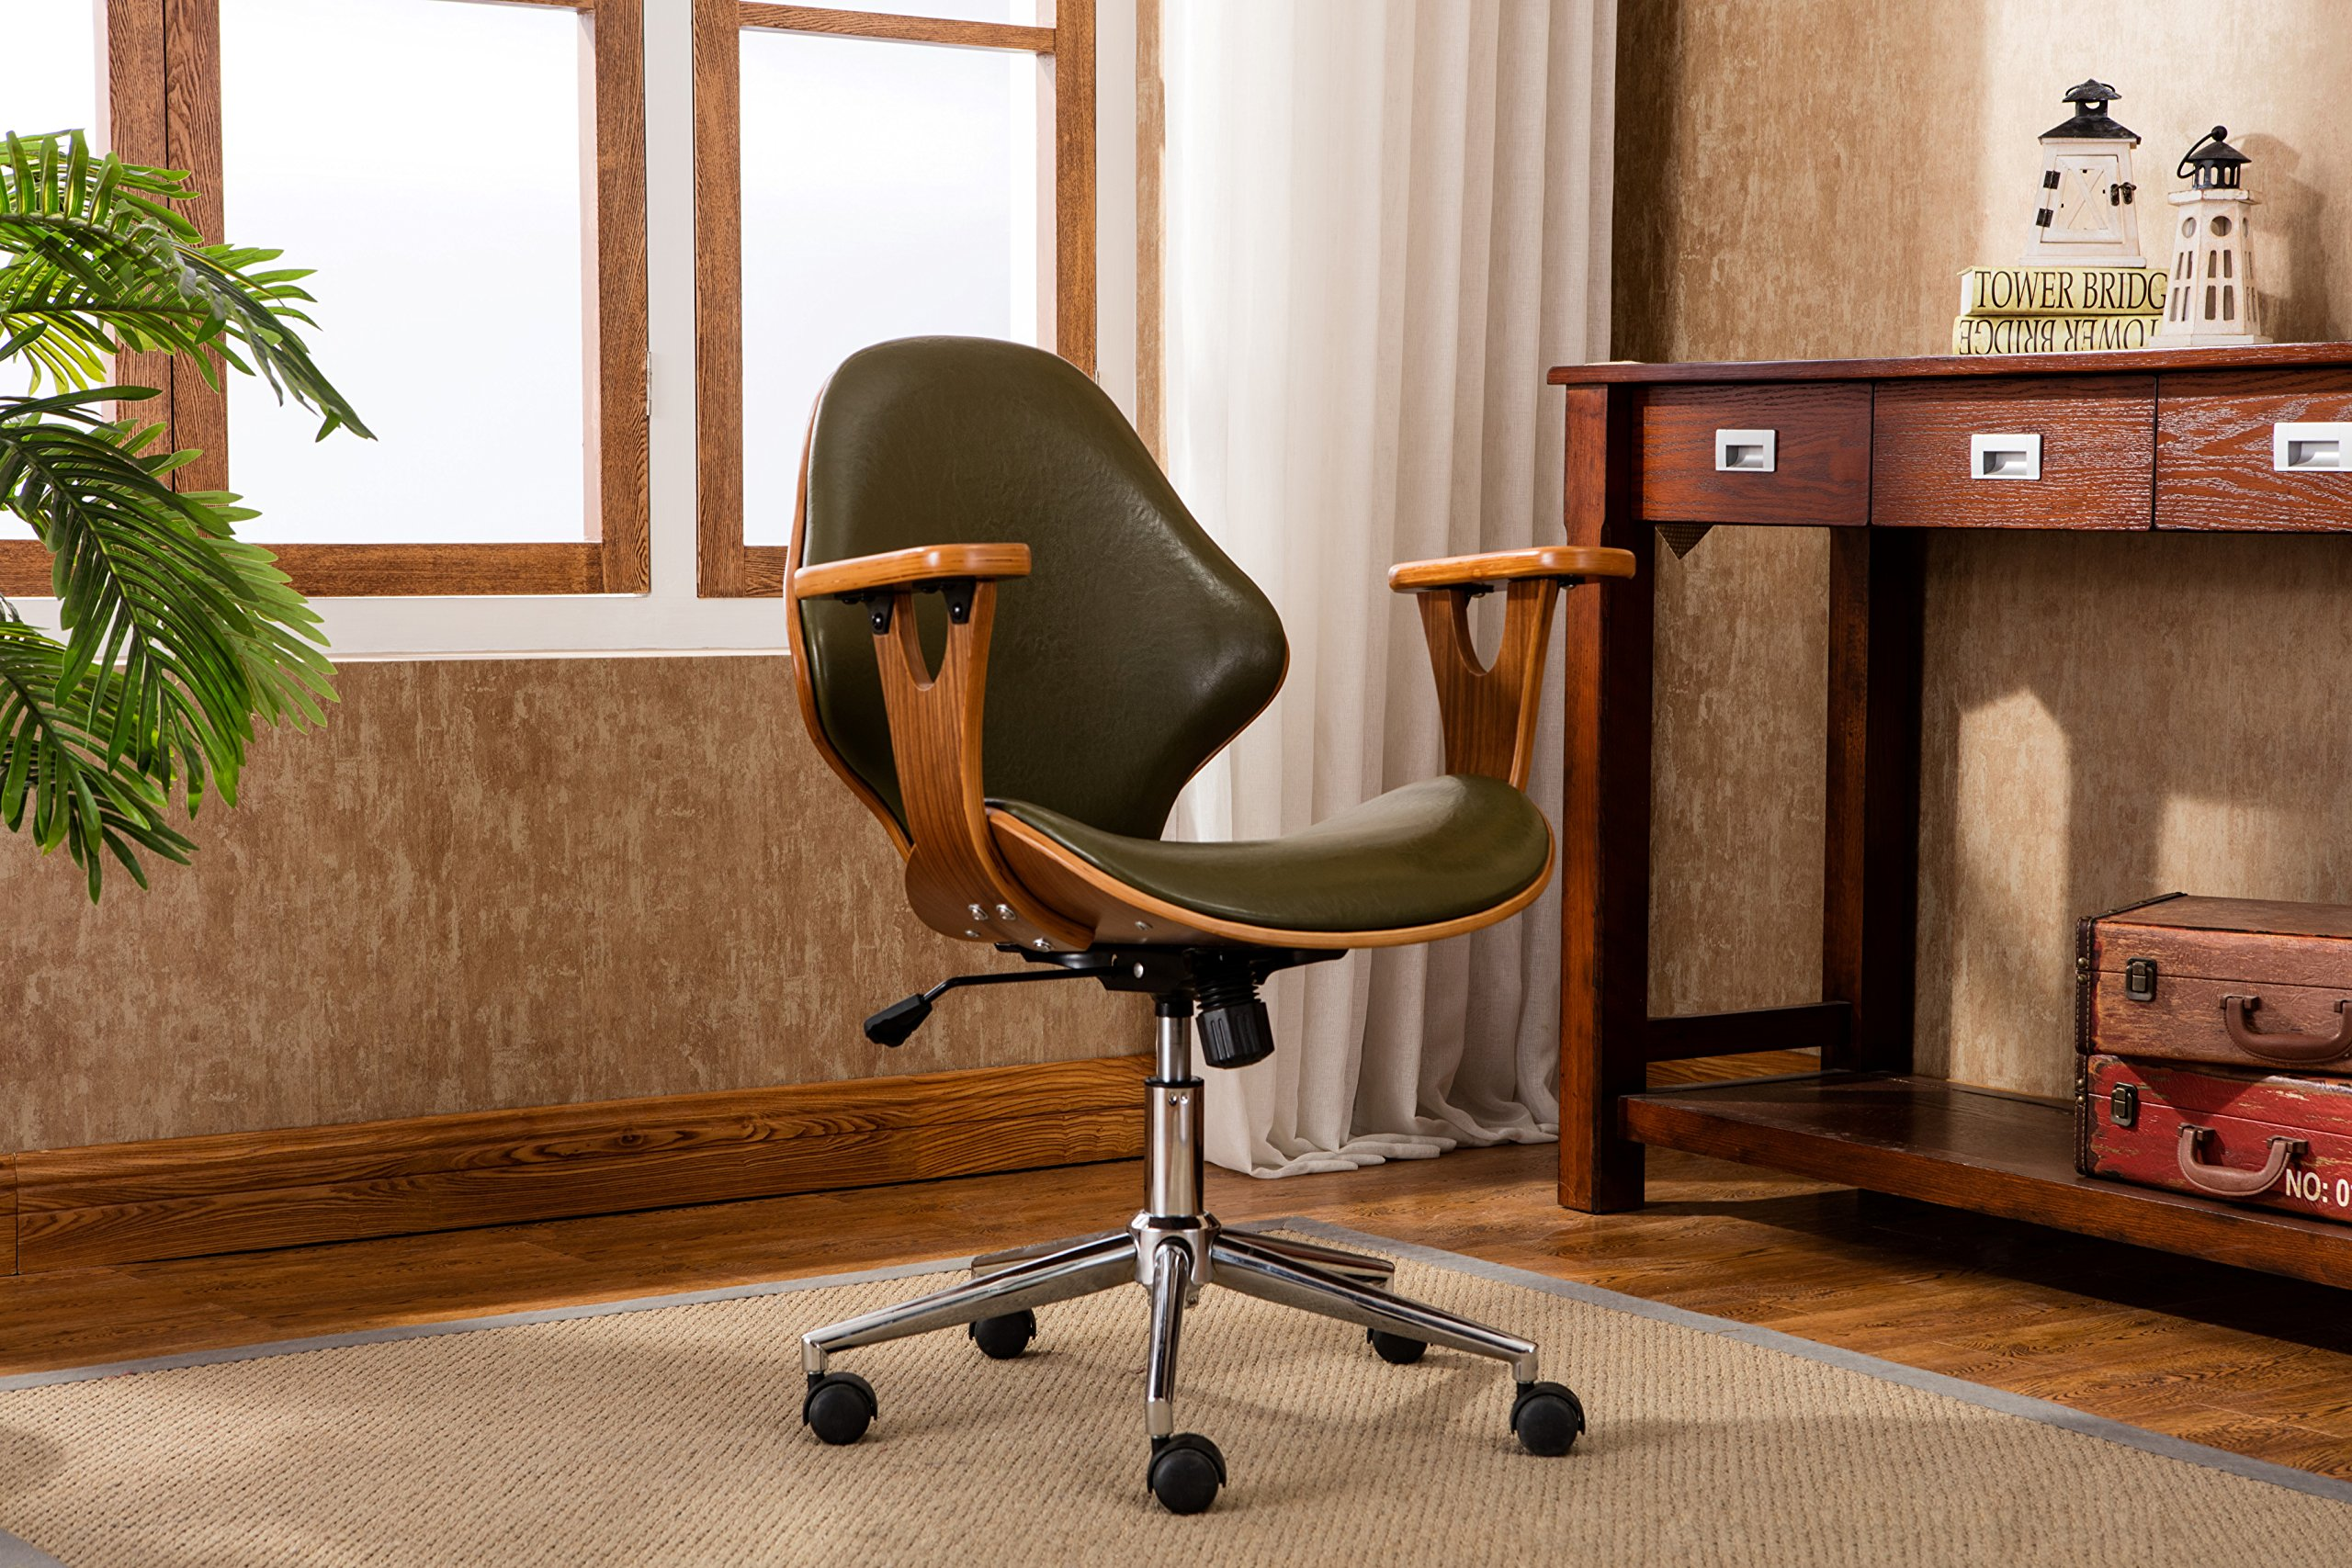 Porthos Home SKC009A GRN Lilian Office Chairs in Mid Century Modern Design with Arm Rests, Leather Upholstery, Height Adjustment & Stainless Steel Legs, Green by Porthos Home